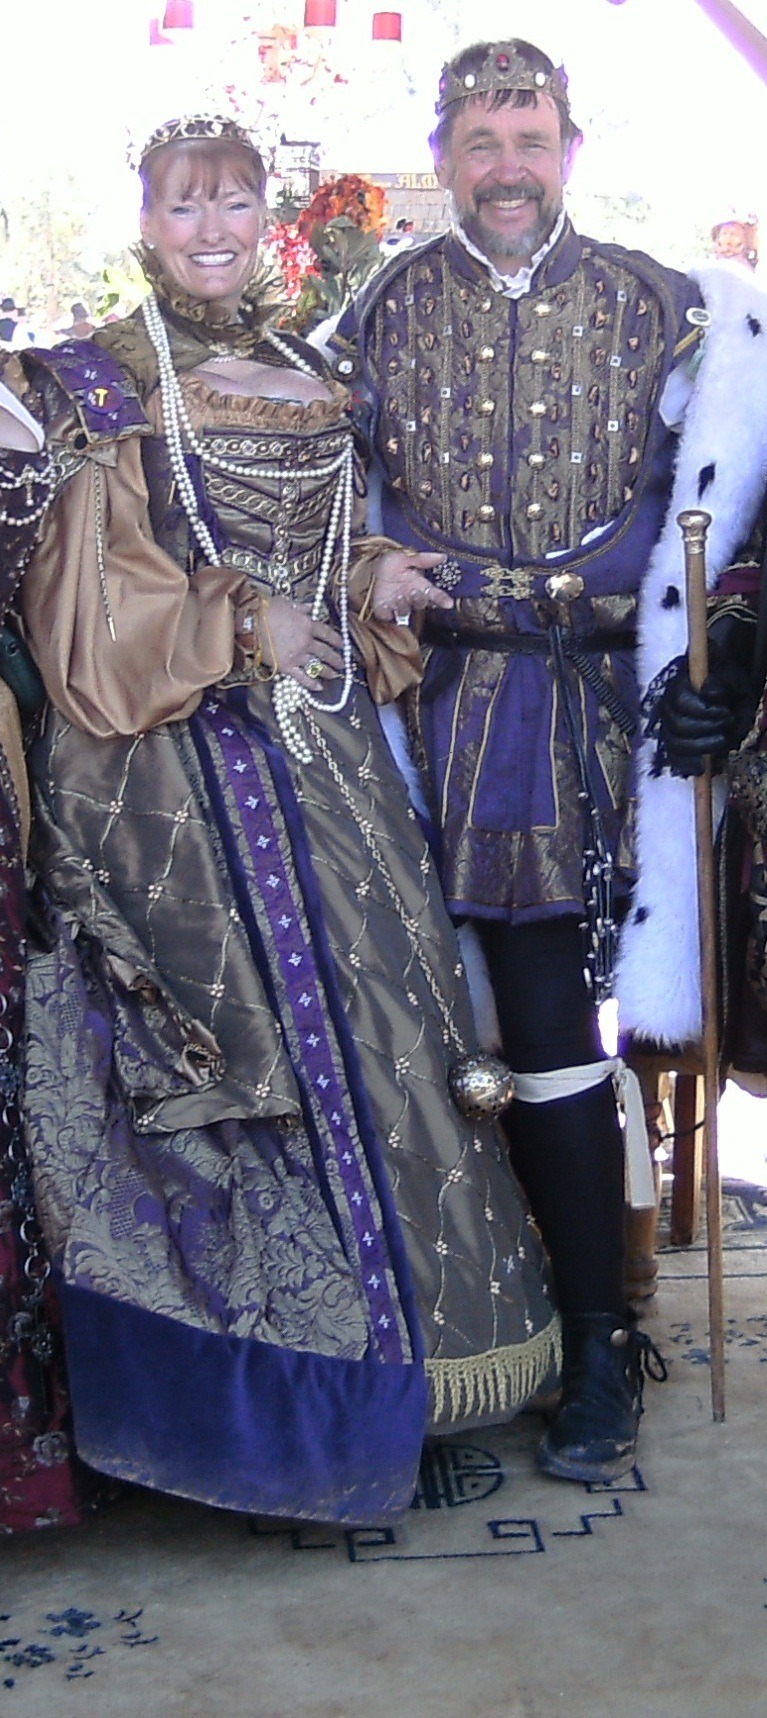 Silver and purple renaissance king and queen garb